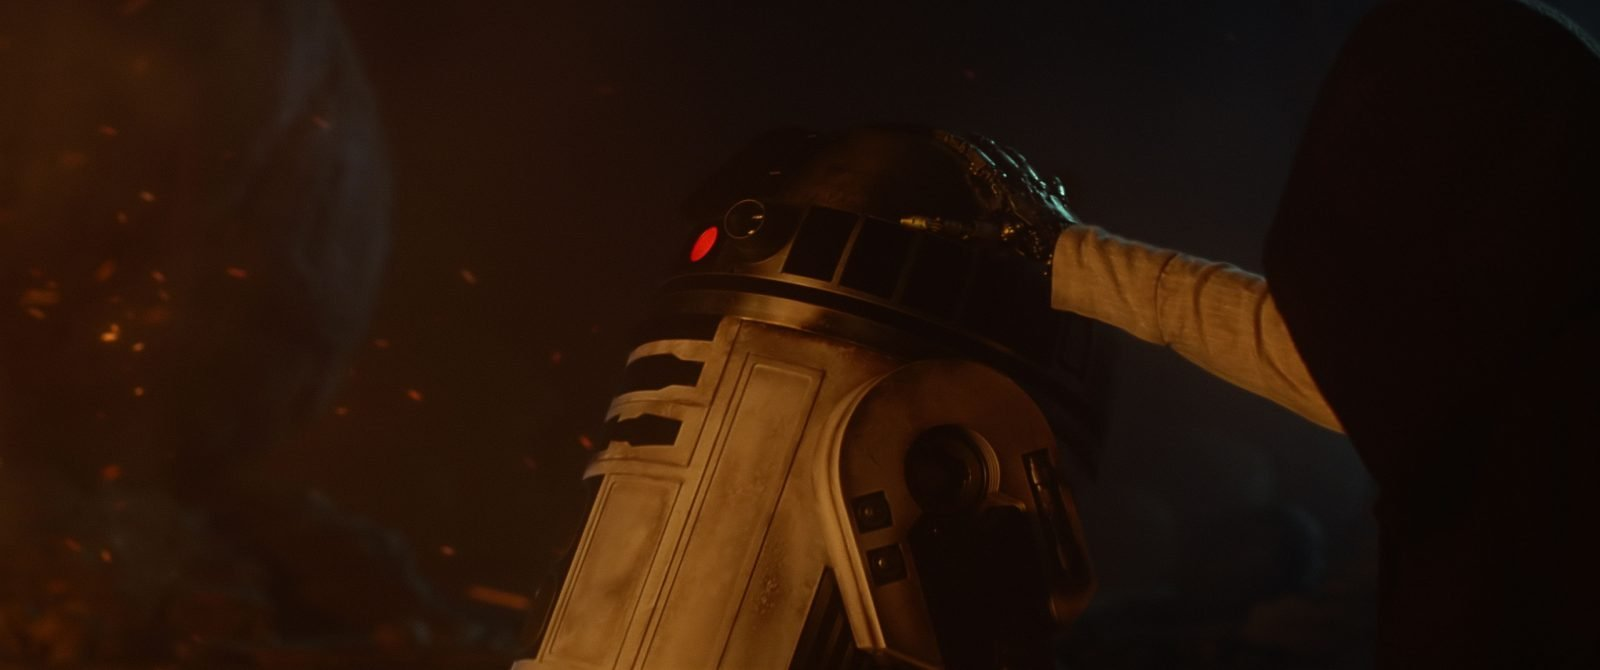 Star Wars VII The Force Awakens 28 - Robotic hand on R2-D2 Luke Skywalker